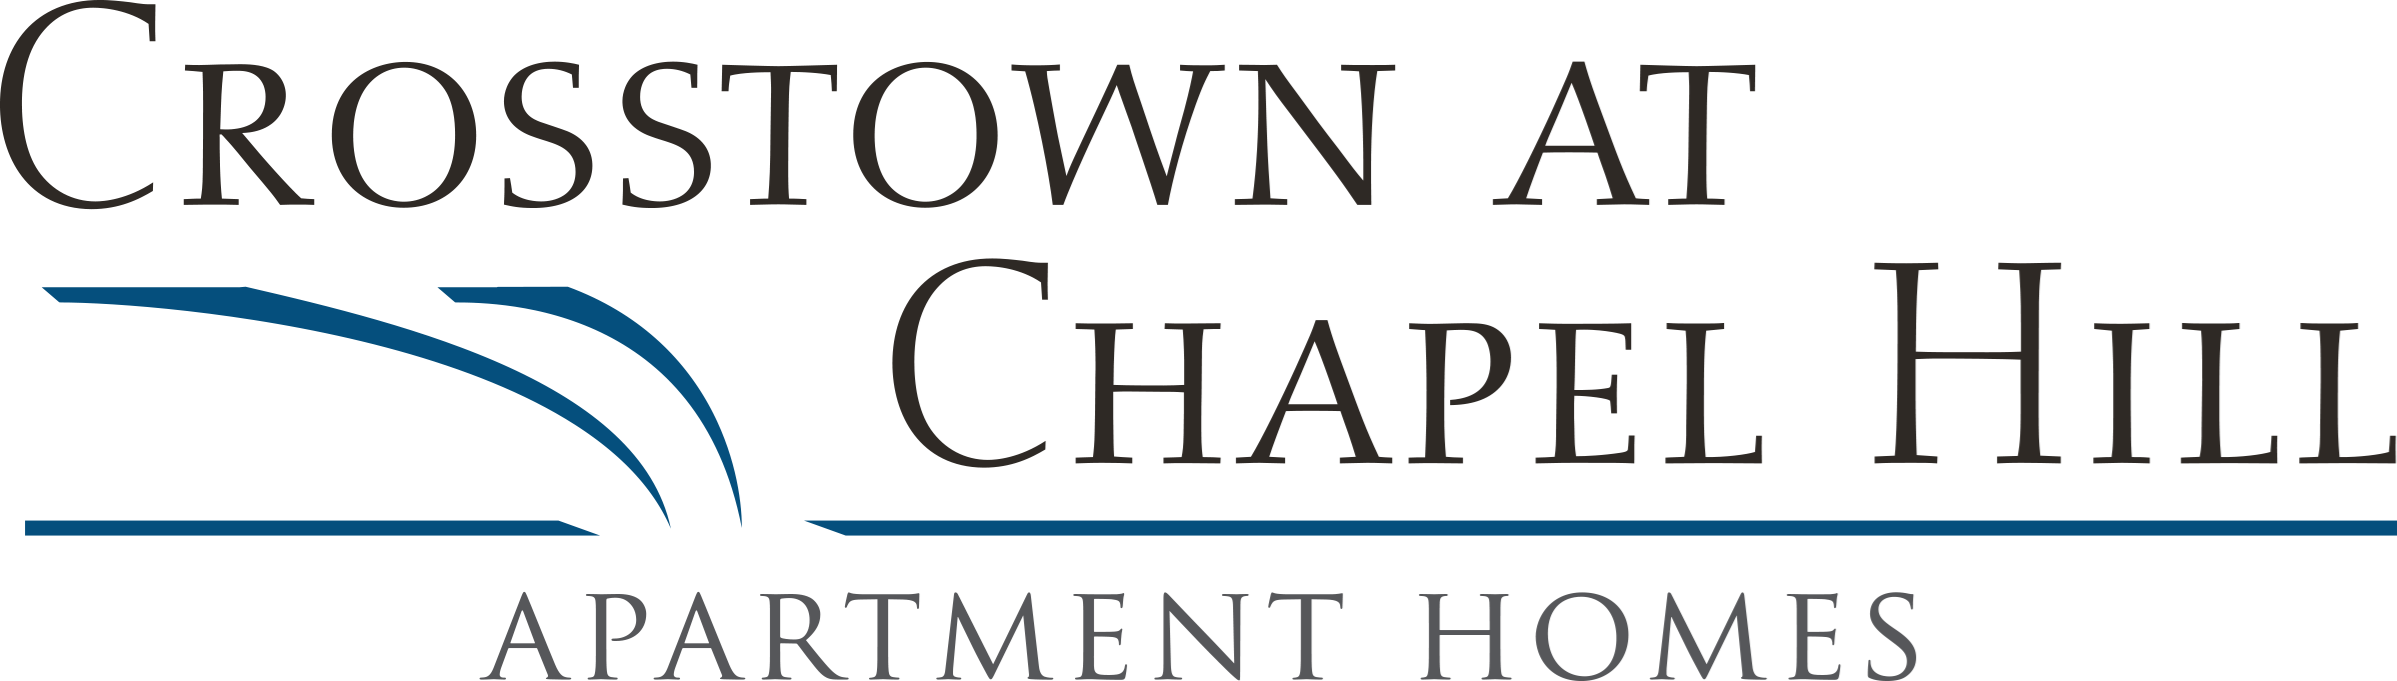 Crosstown at Chapel Hill Apartment Homes Logo